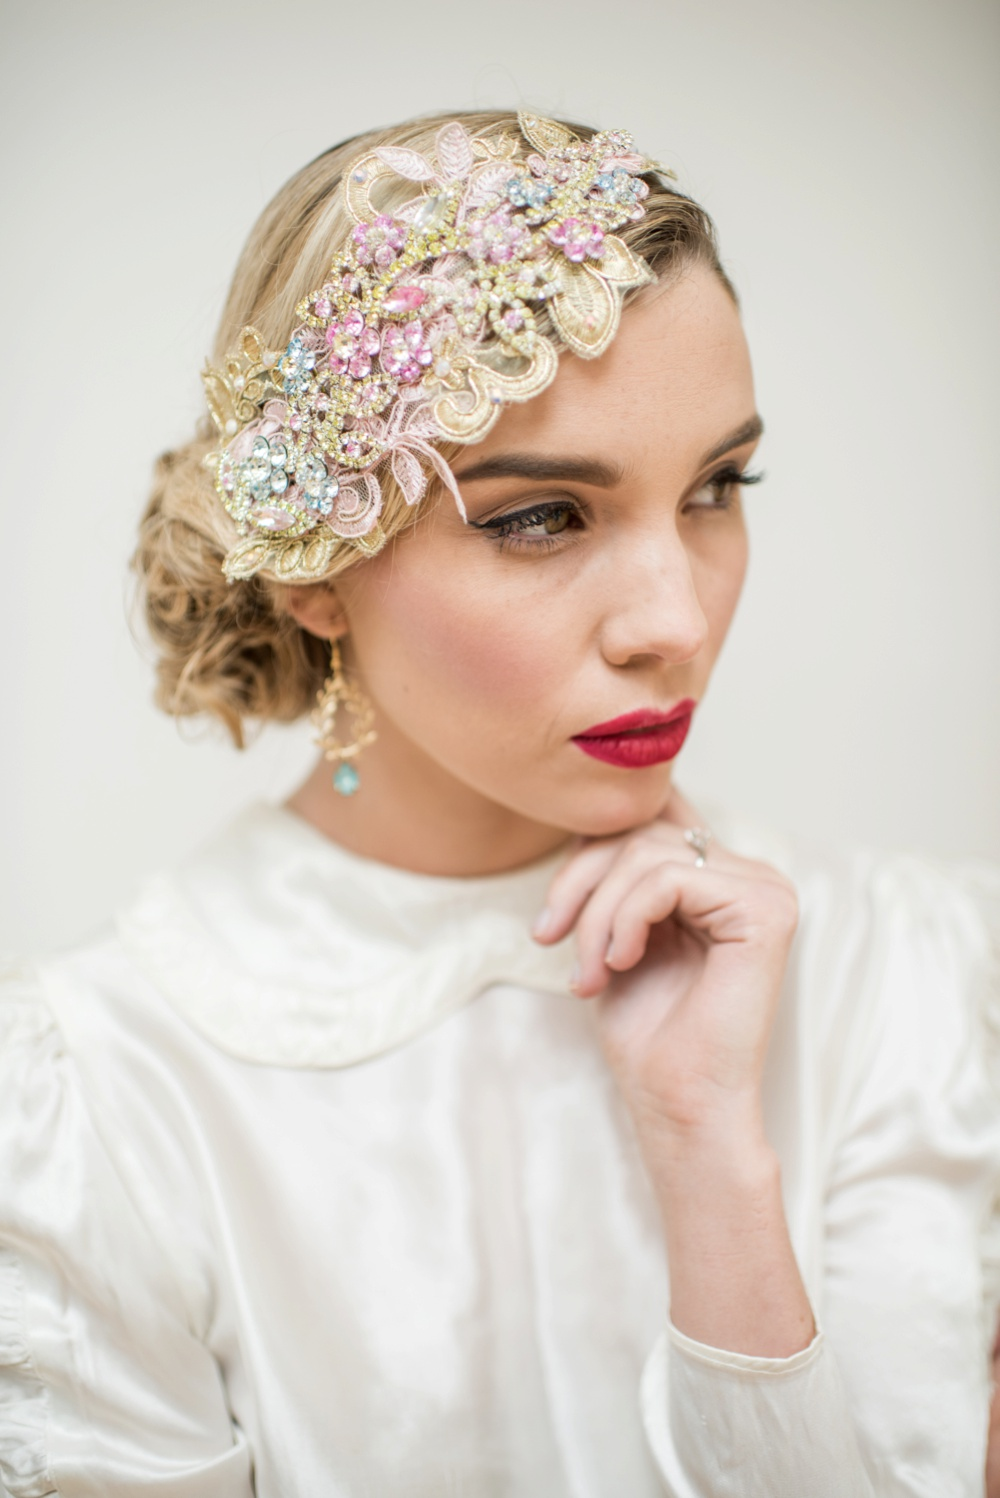 fine-art-wedding-photographer-jane-beadnell-photography-bridal-accessories-bespoke-vintage-castle-85